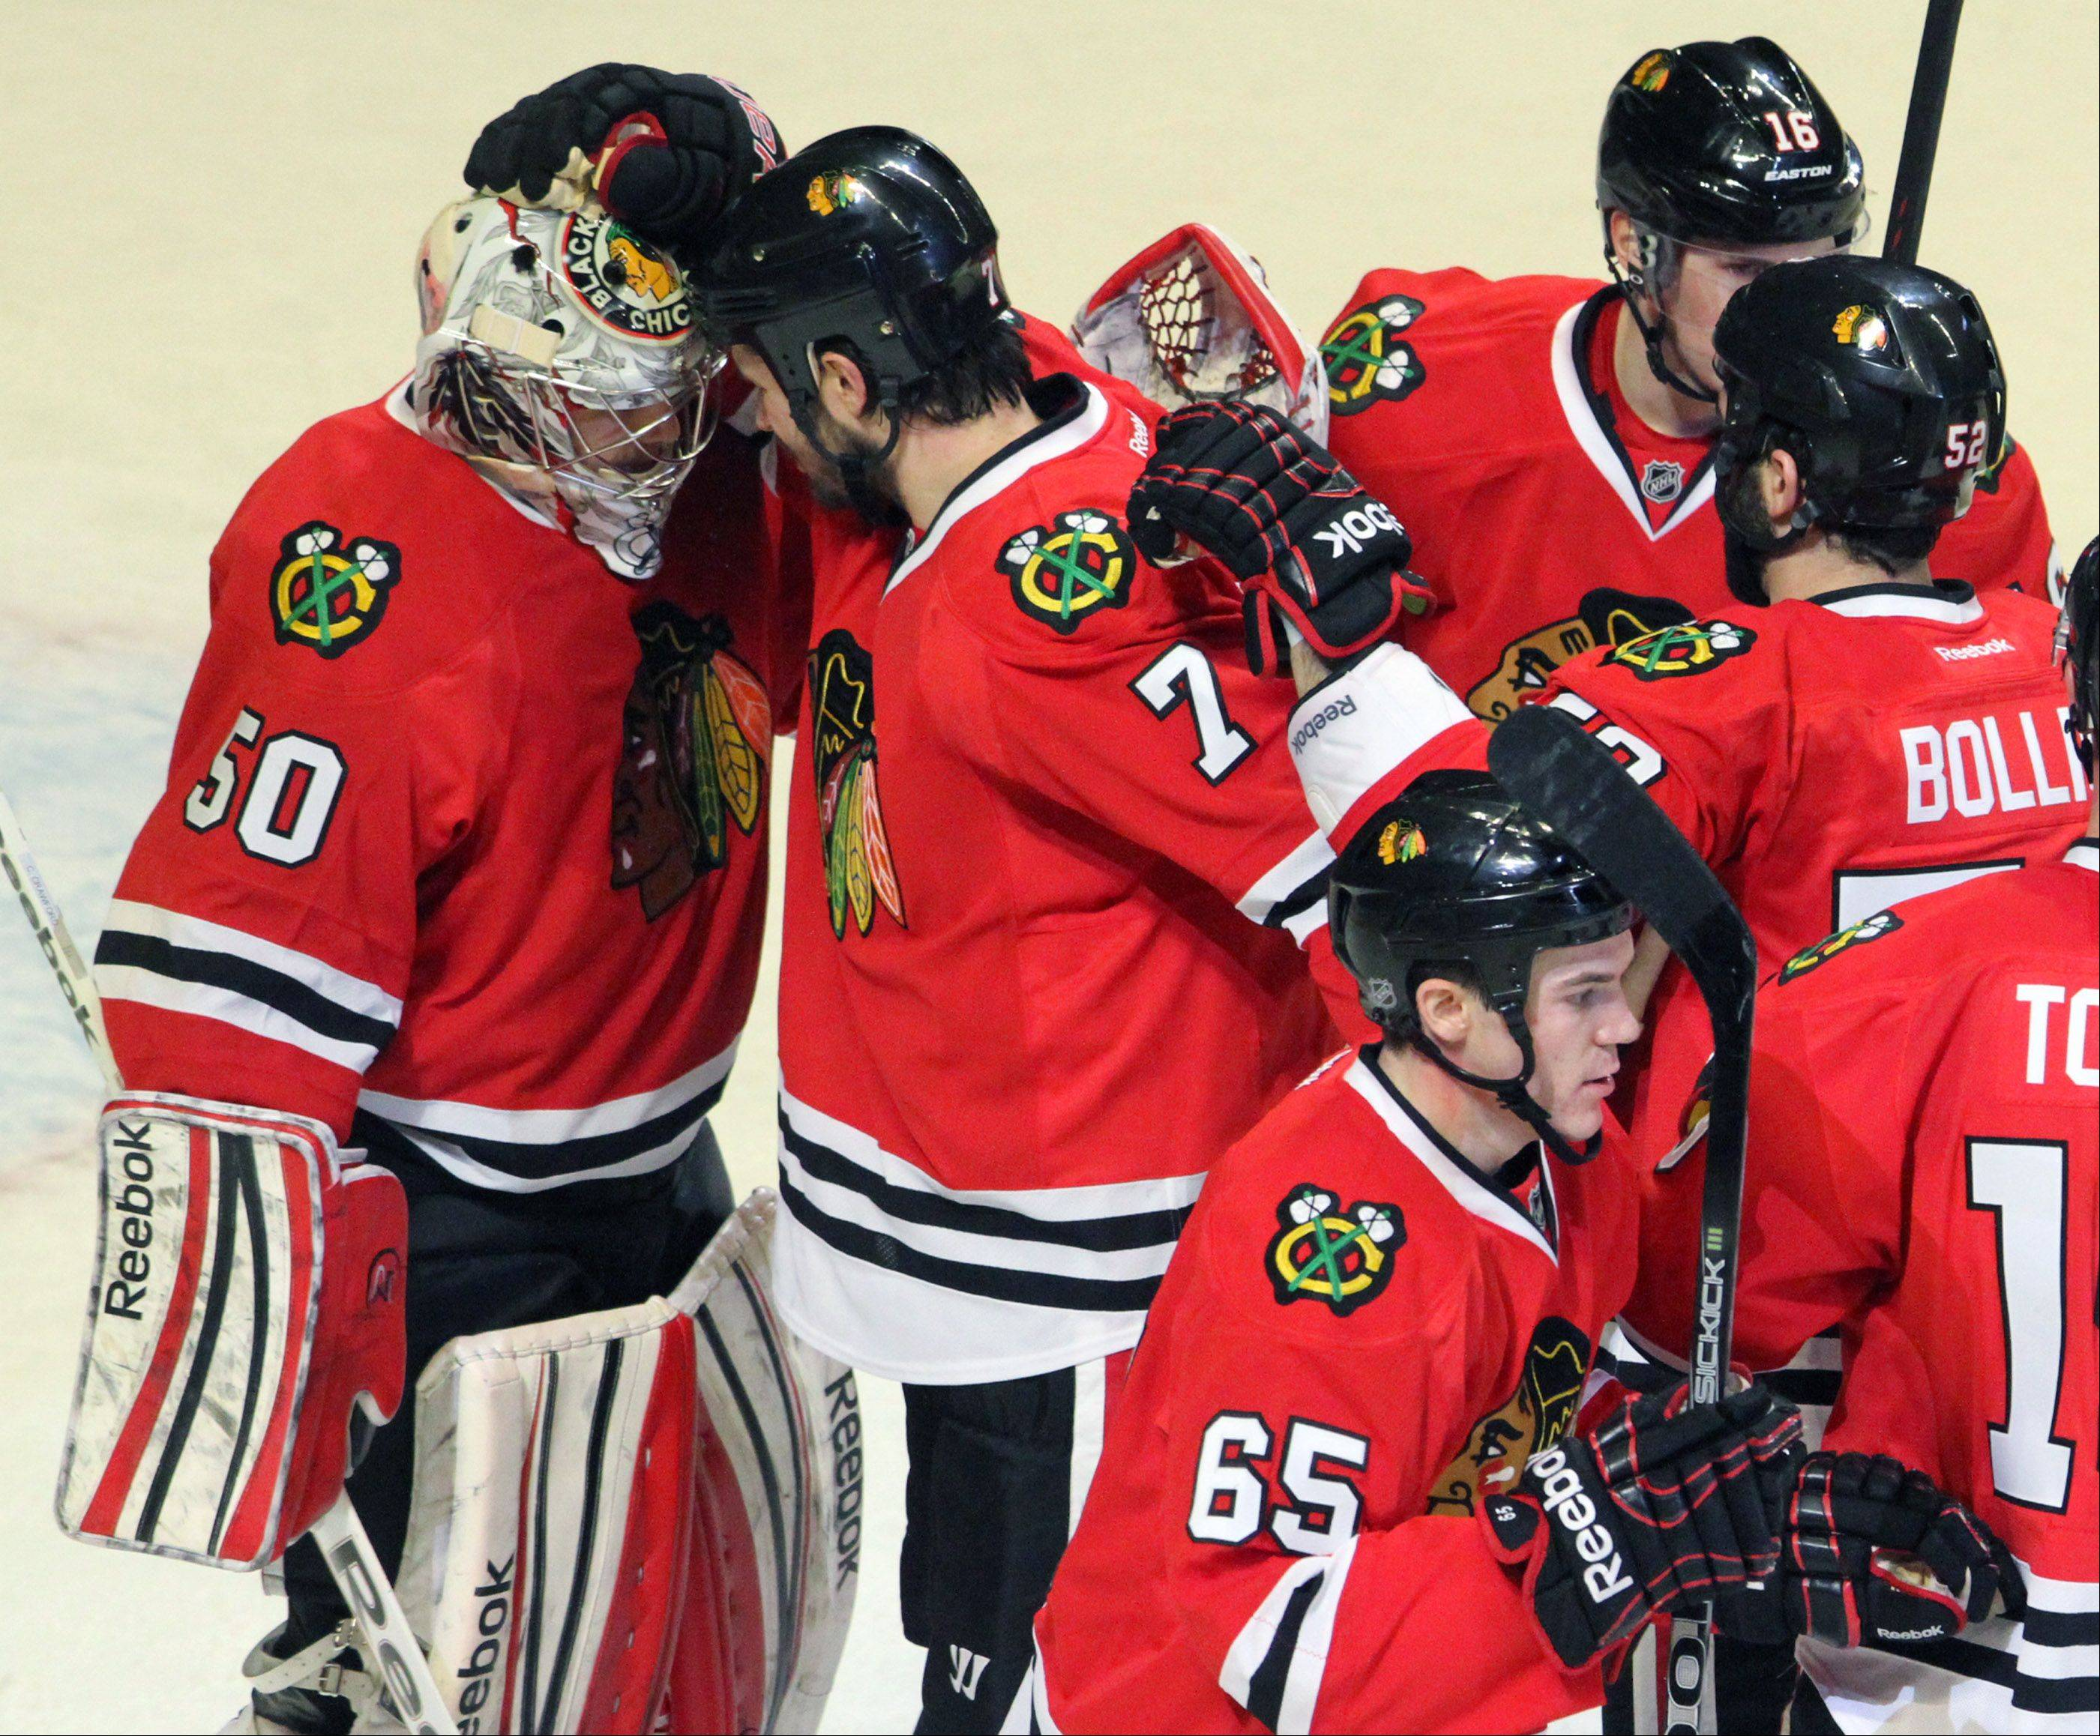 Blackhawks defenseman Brent Seabrook gives goalie Corey Crawford a hand after the Hawks� 3-2 victory over St. Louis Blues in Tuesday night�s home opener.